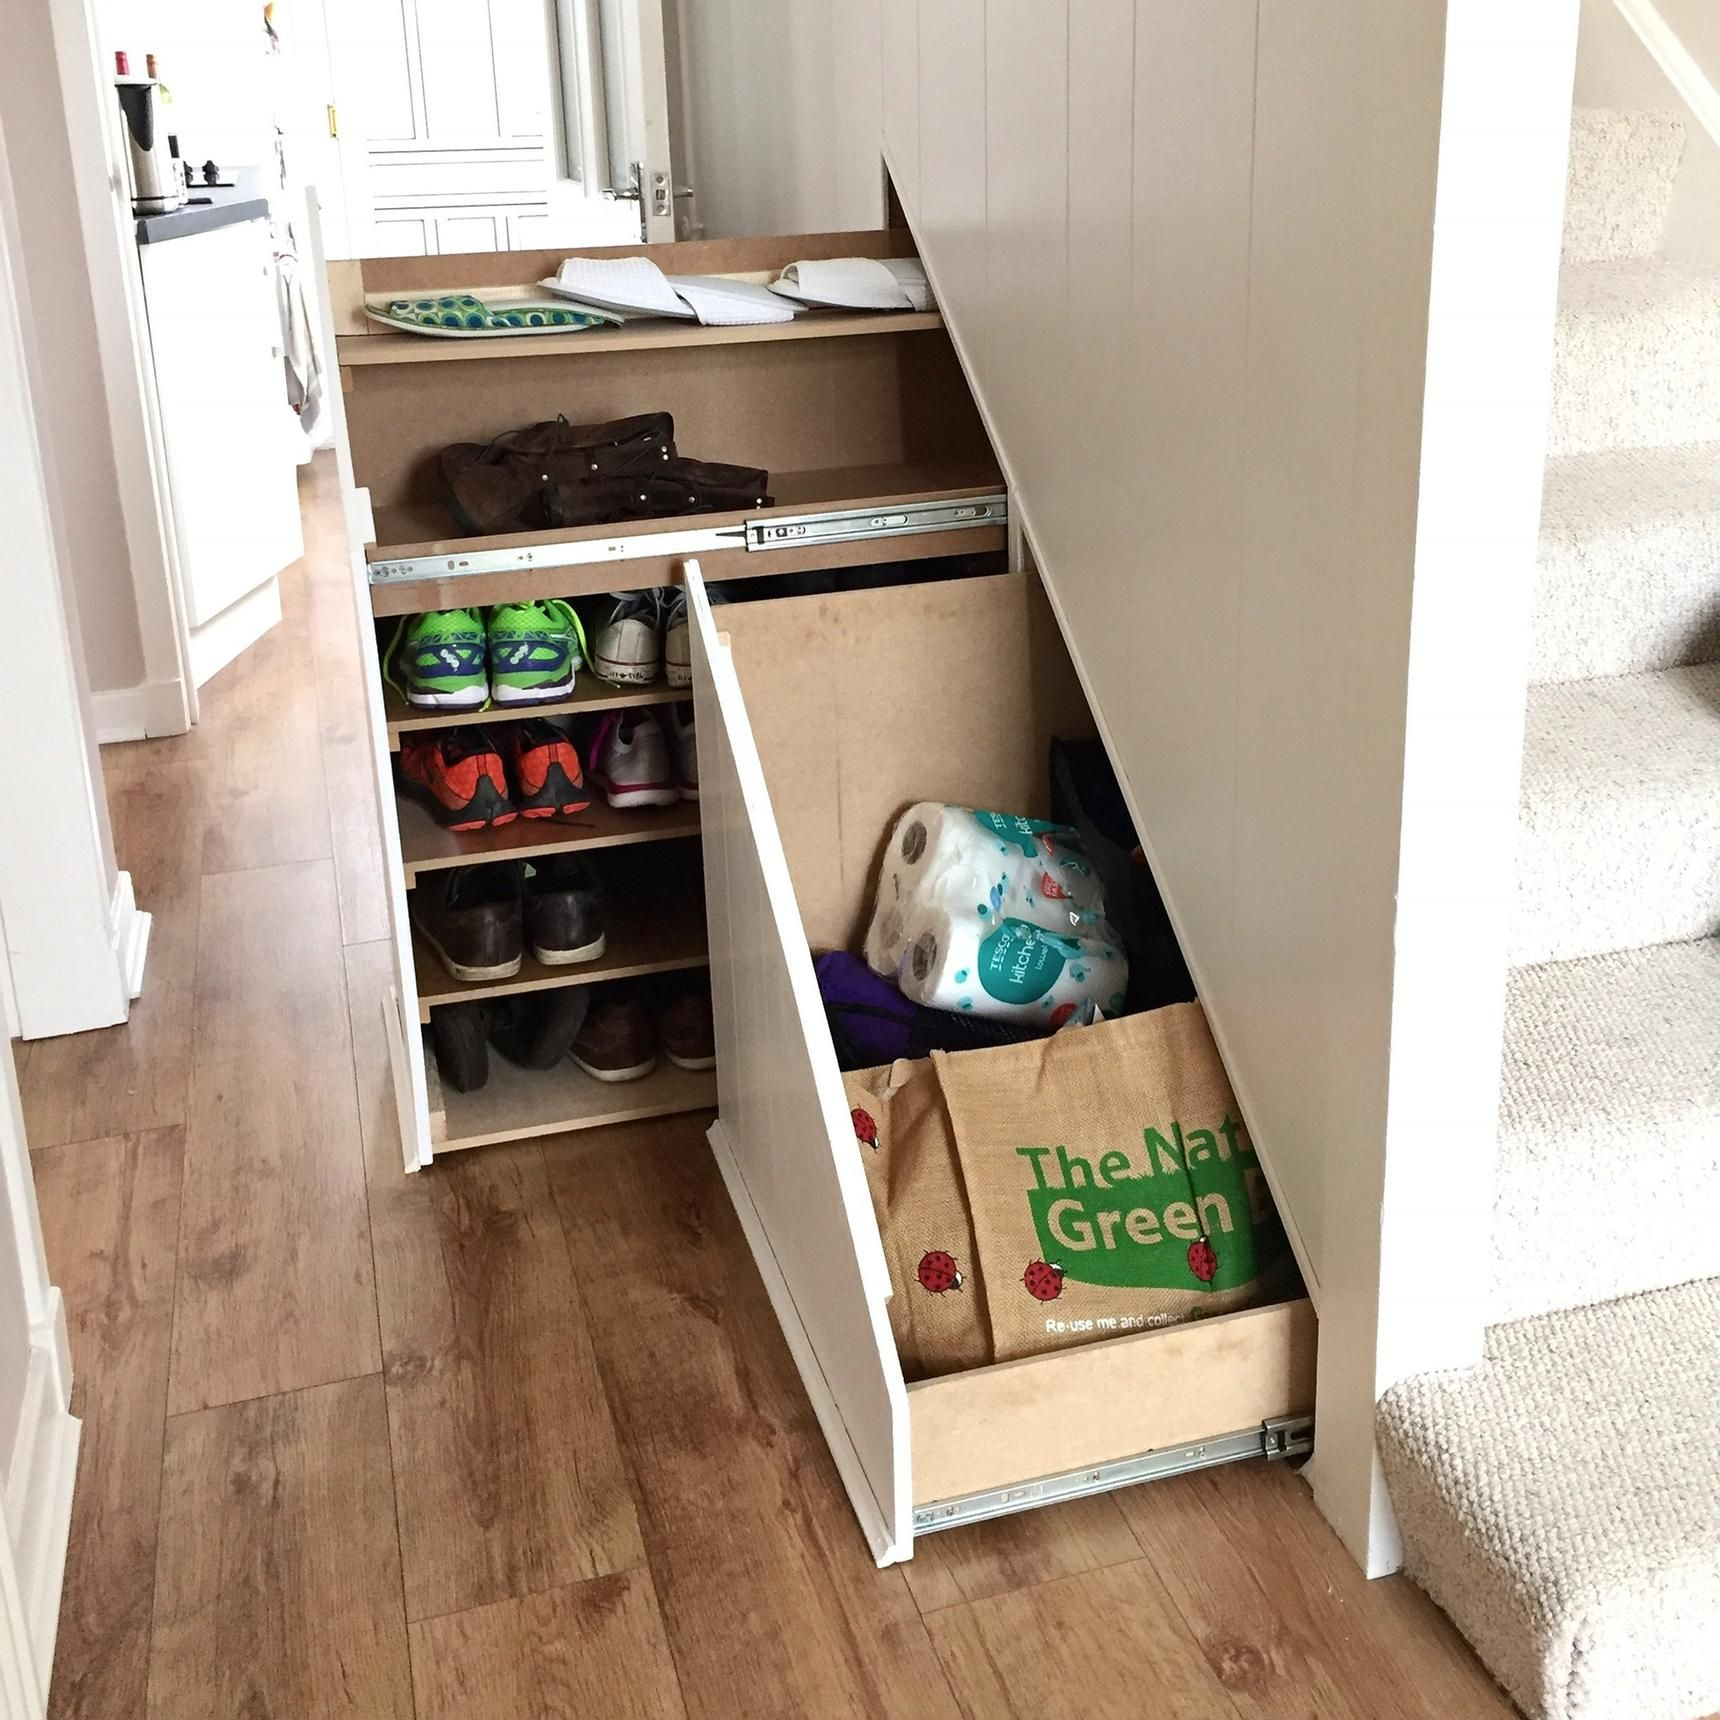 What We Offer At Darboy Storage: Home Organization Ideas To Turn Unused Space Into Storage